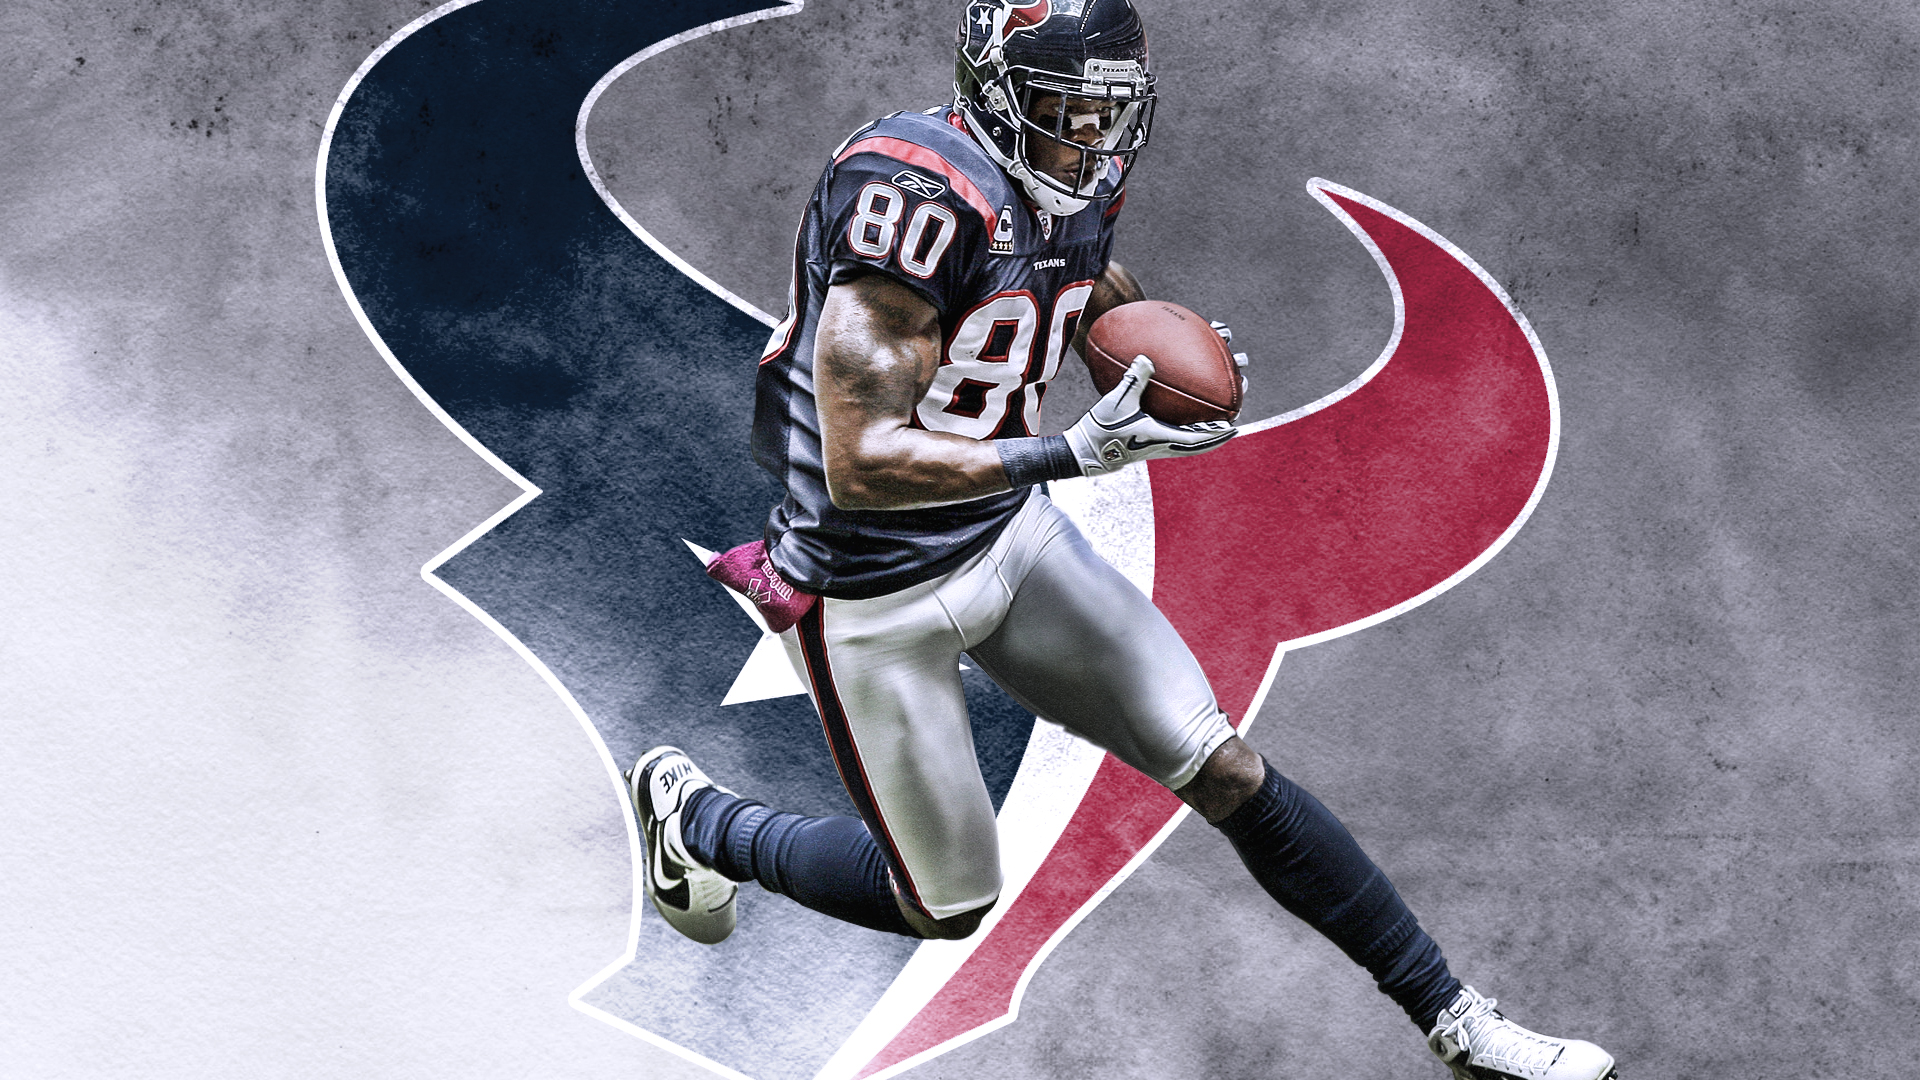 Hd Wallpapers Houston Texans Logo Wallpaper 1280 X 1024 363 Kb Jpeg 1920x1080